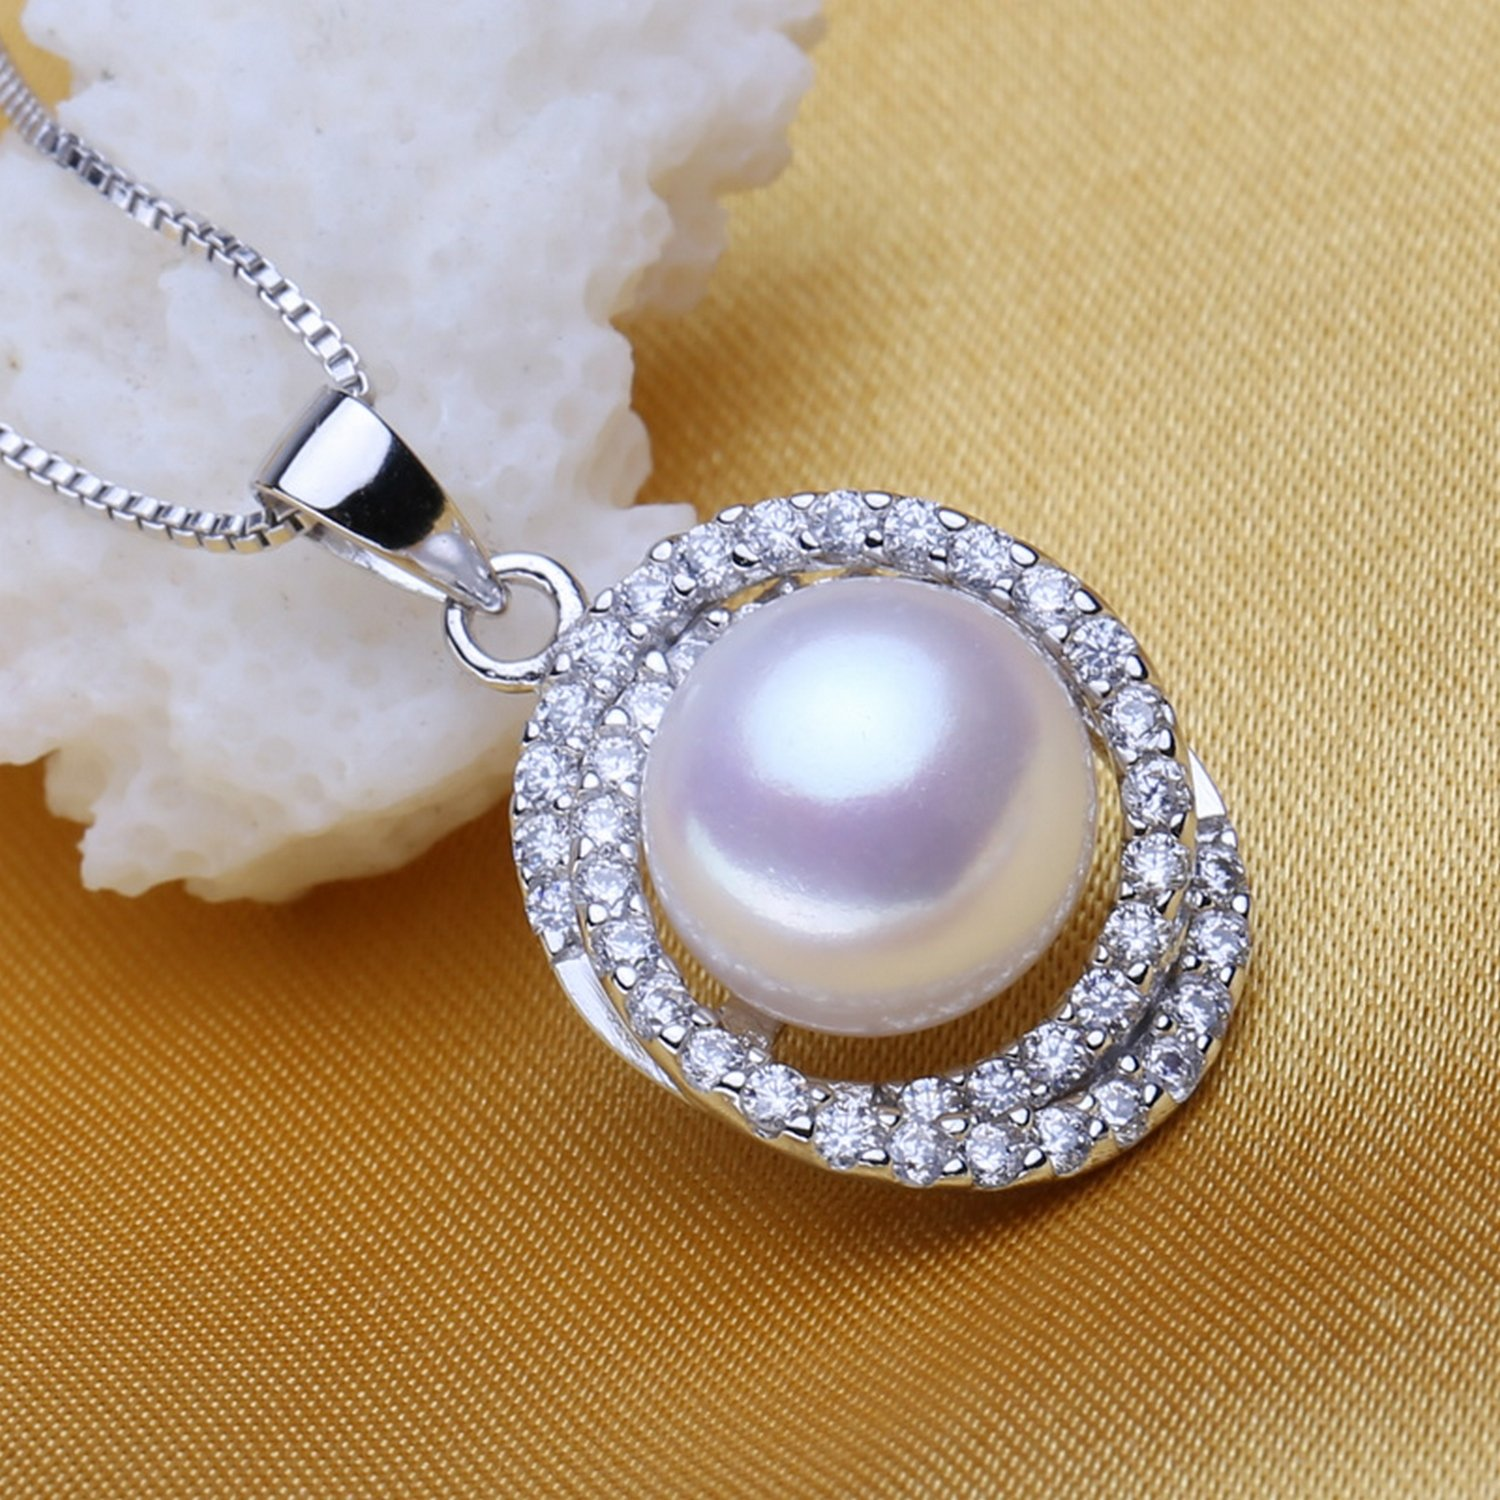 CS-DB Jewelry Silver Pearl Choker Chain Charm Pendants Necklaces